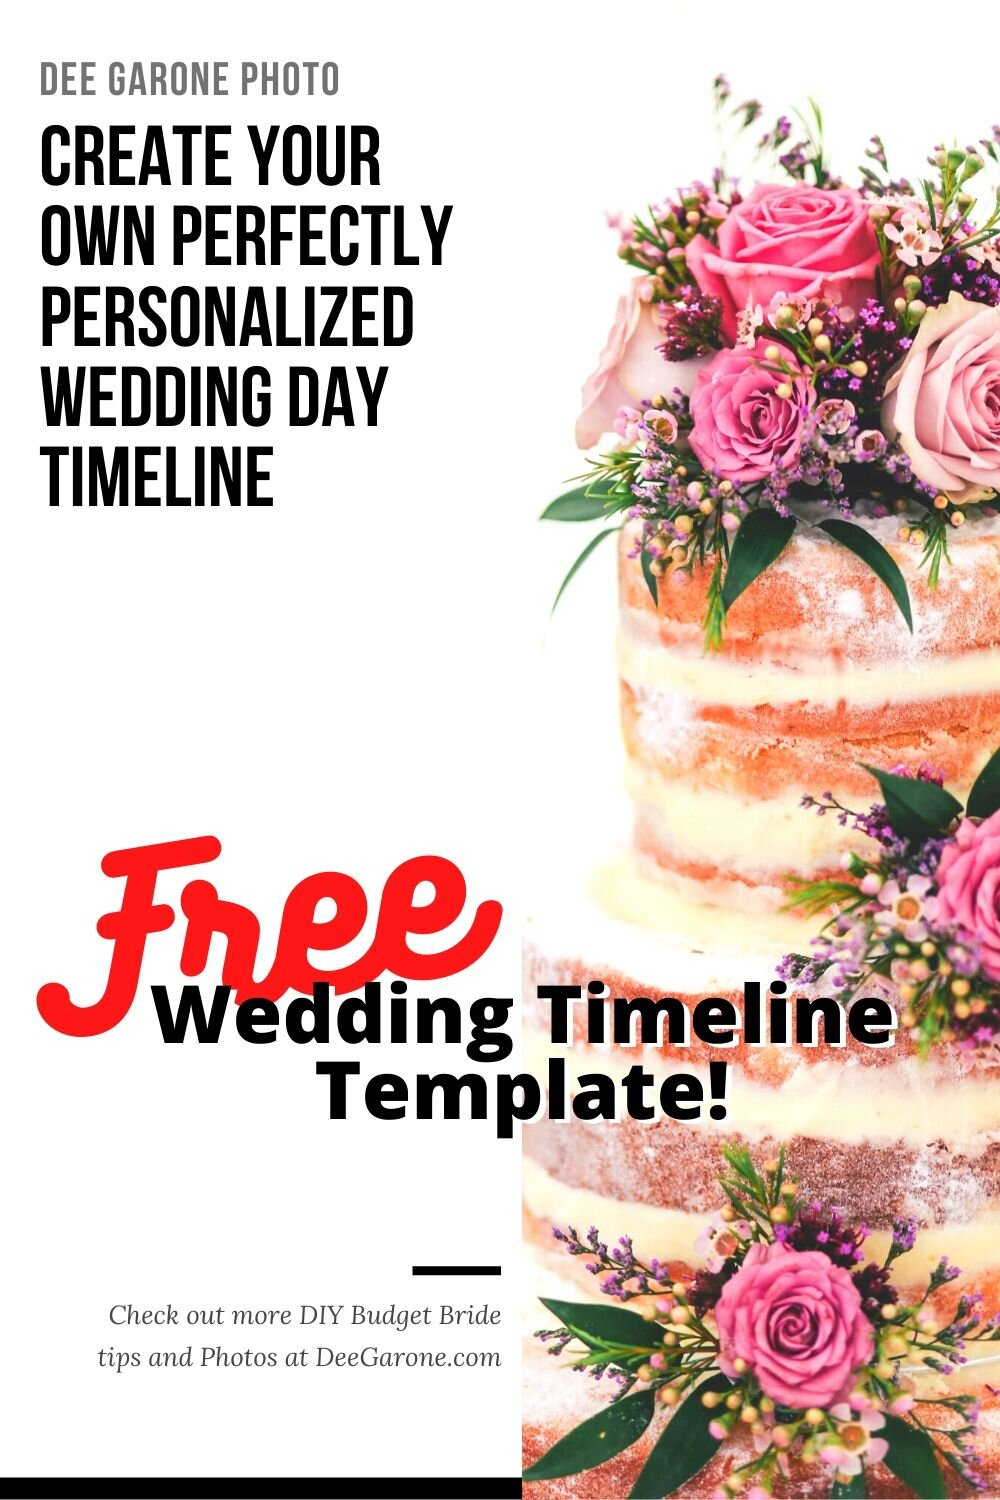 Free Wedding Day Timeline Template from images.squarespace-cdn.com